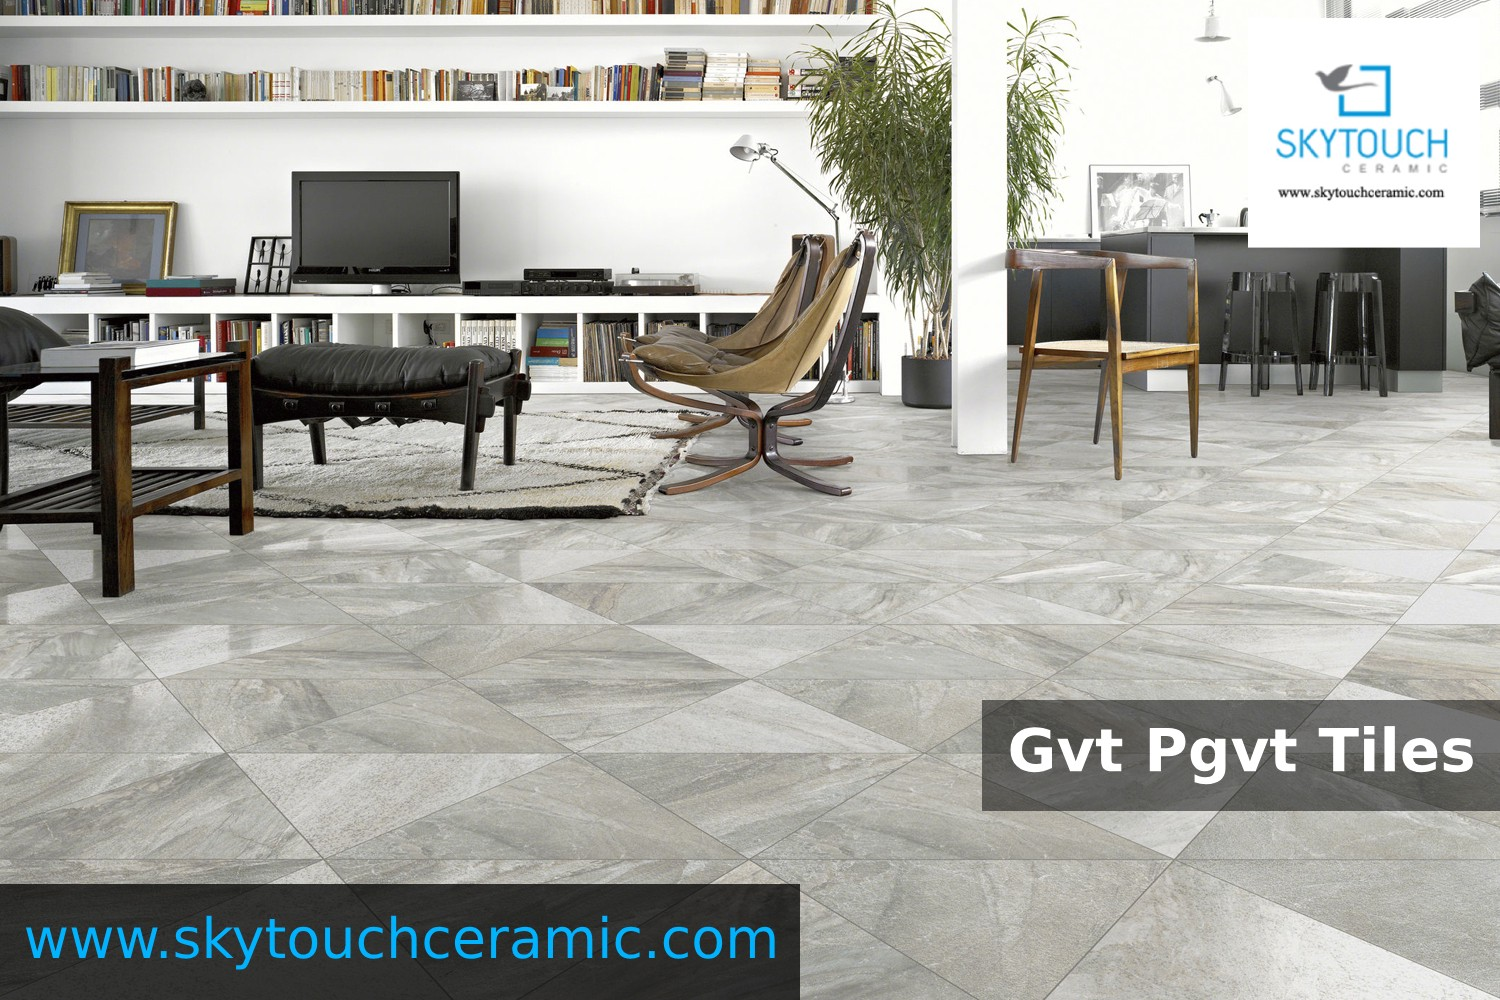 Gvt Pgvt Vitrified Digital Nano Wooden Tiles Manufacturers - Brazilian tile manufacturers